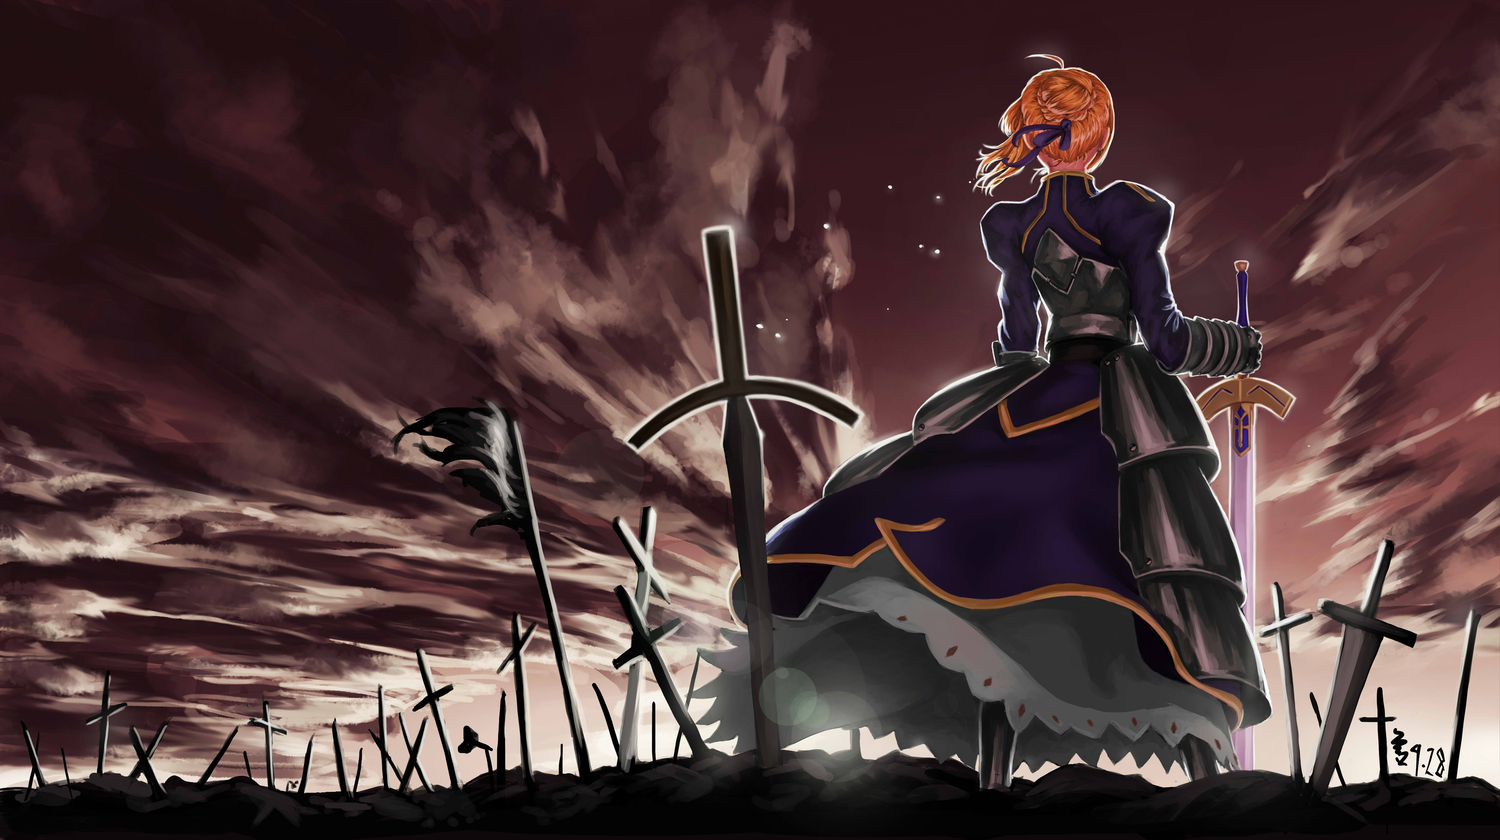 artoria_pendragon_(all) fate_(series) fate/stay_night feitie jpeg_artifacts saber sky sword weapon